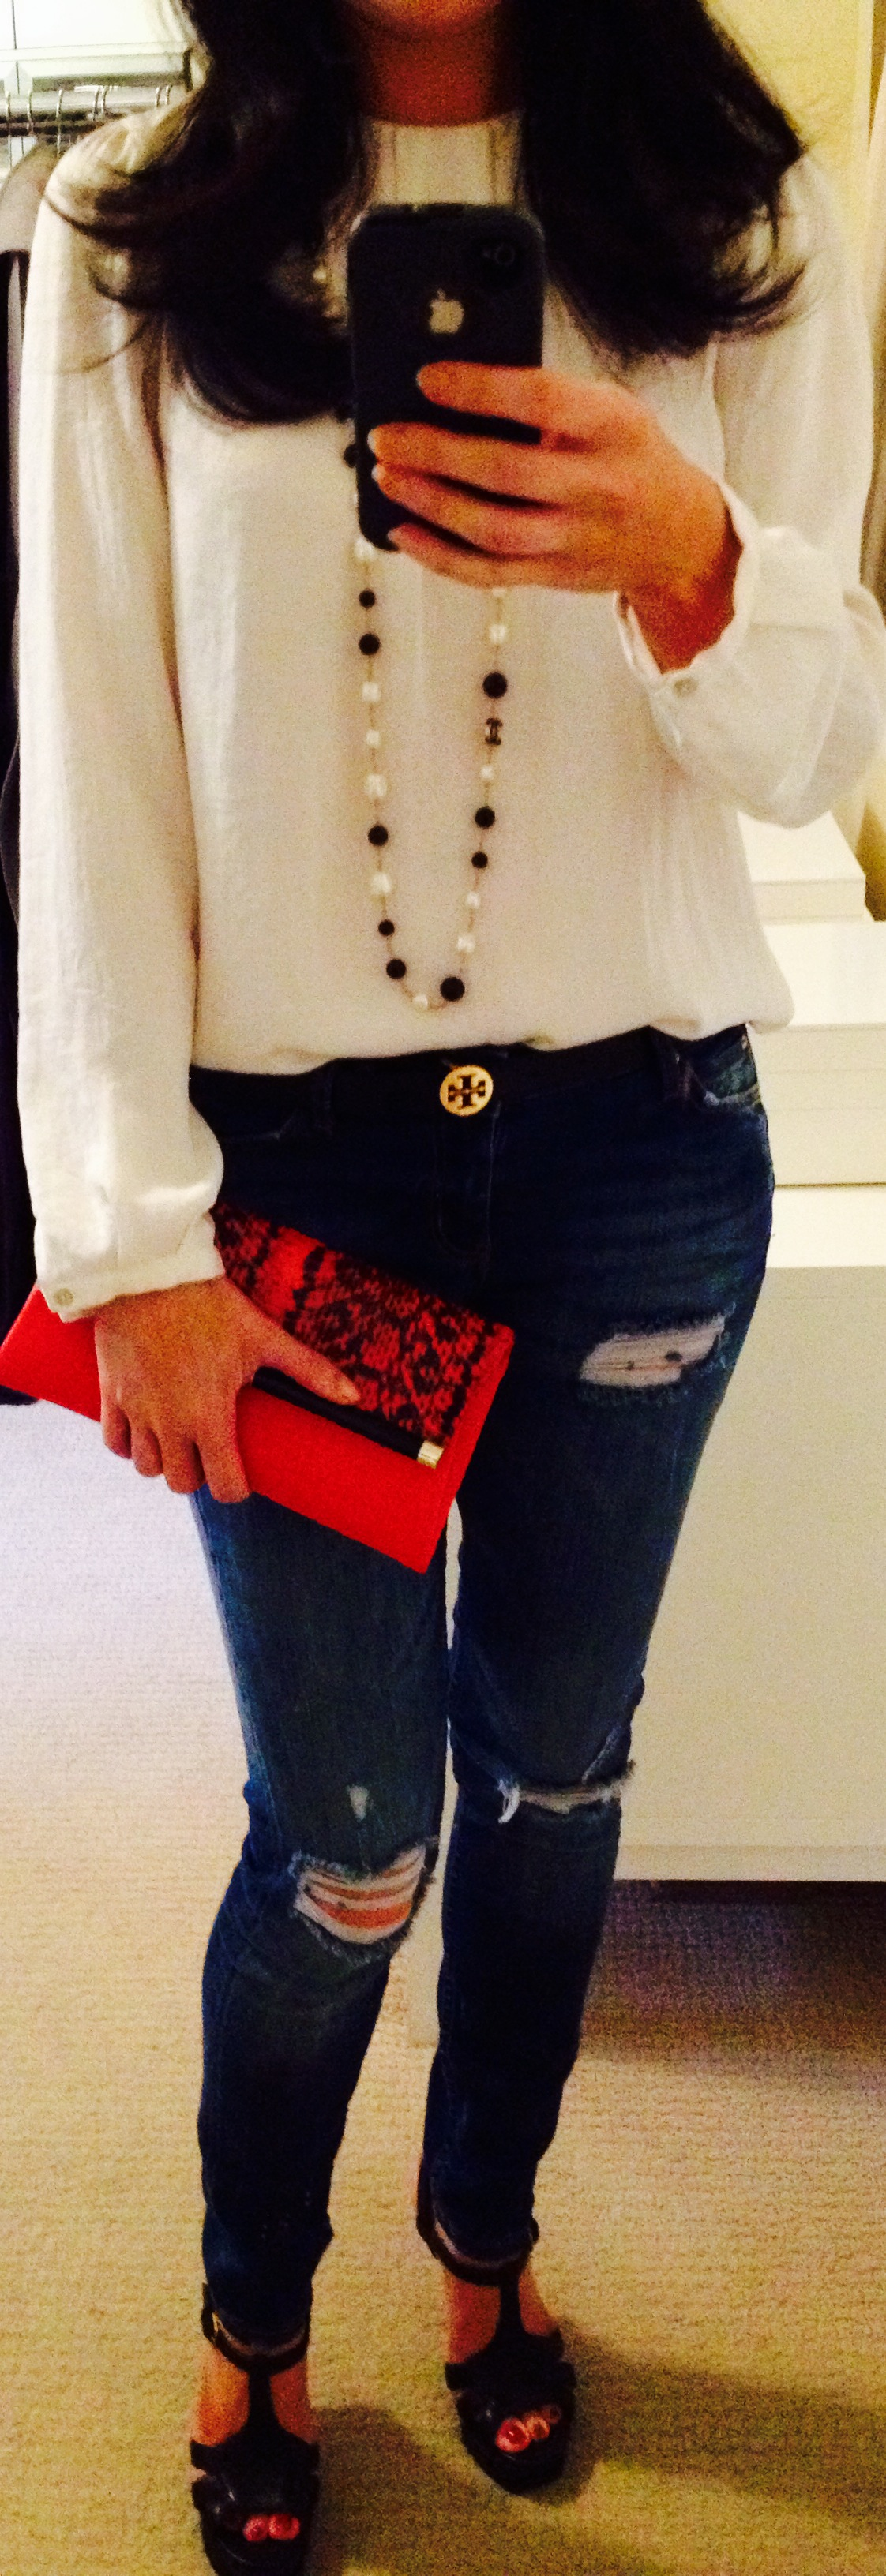 July 21, Cream Blouse with Chanel necklace and Snake Print Clutch by DVF